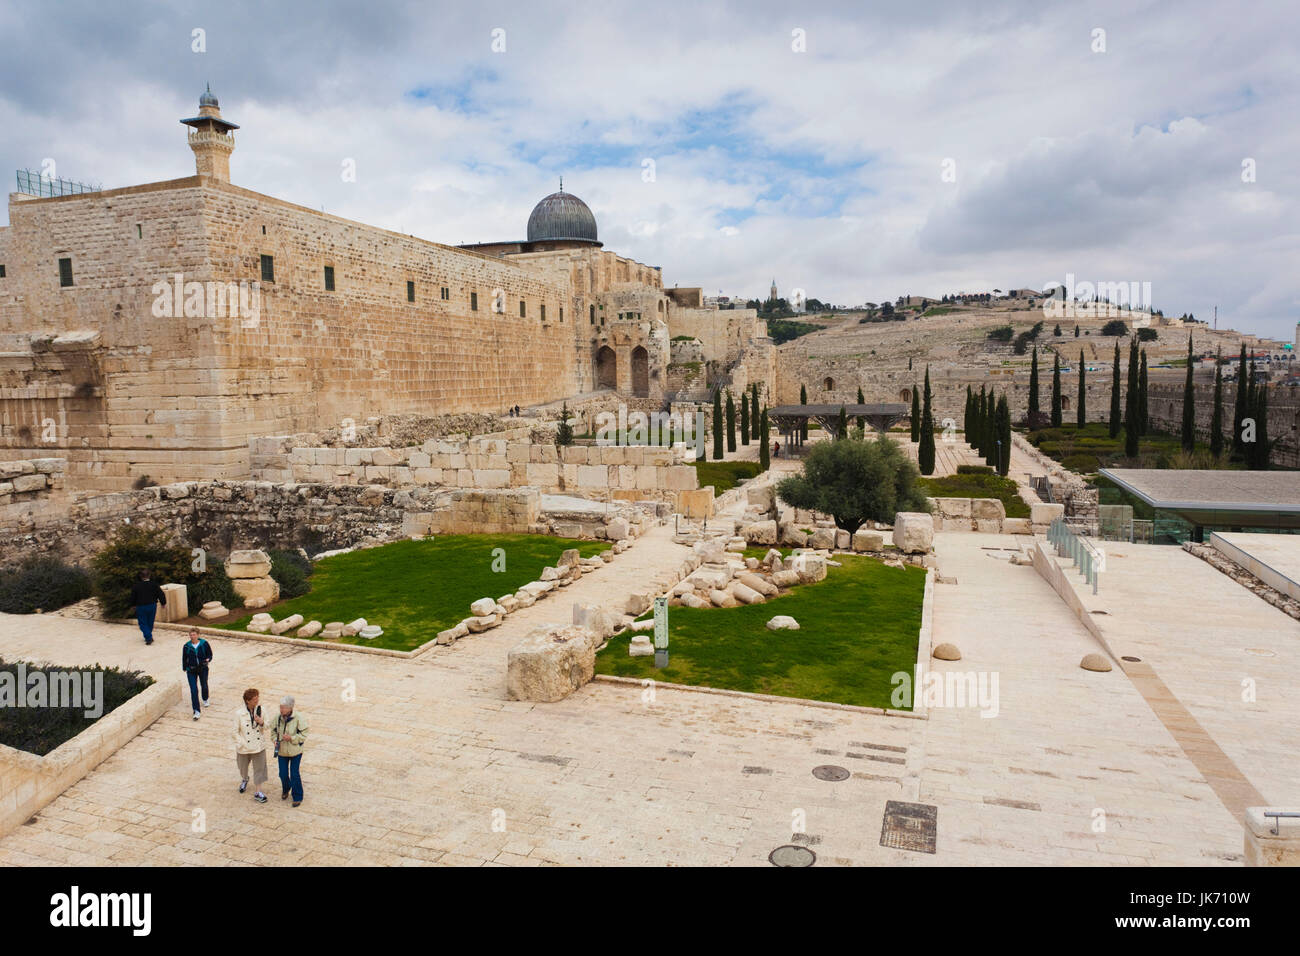 Israel, Jerusalem, Temple Mount and Dome of the Rock - Stock Image